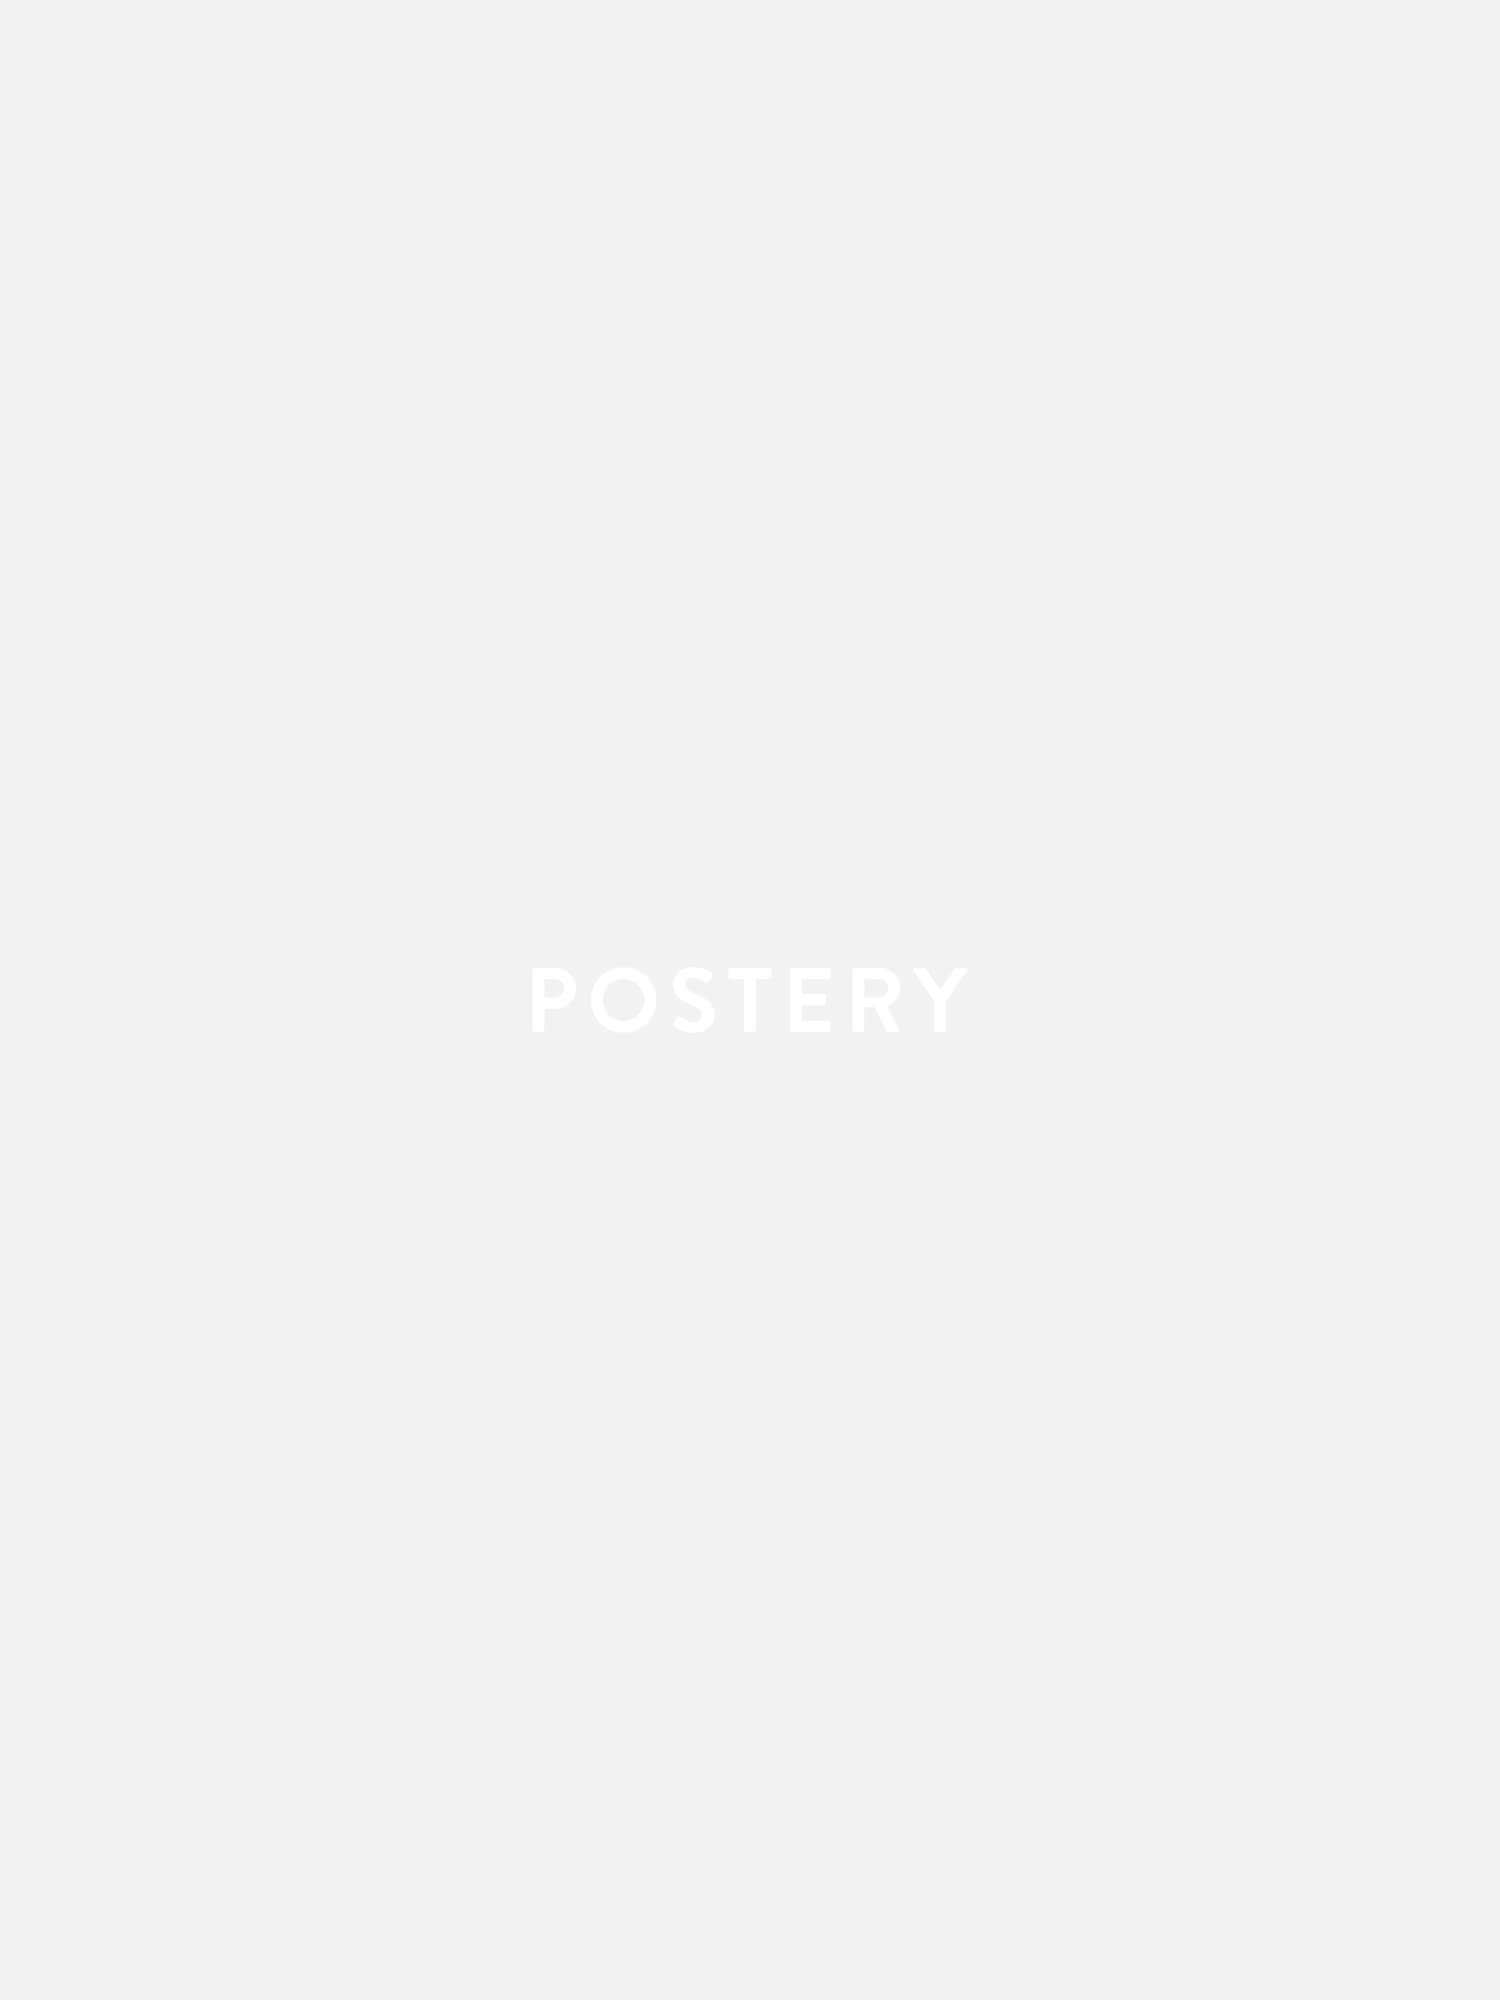 Neon Love Poster